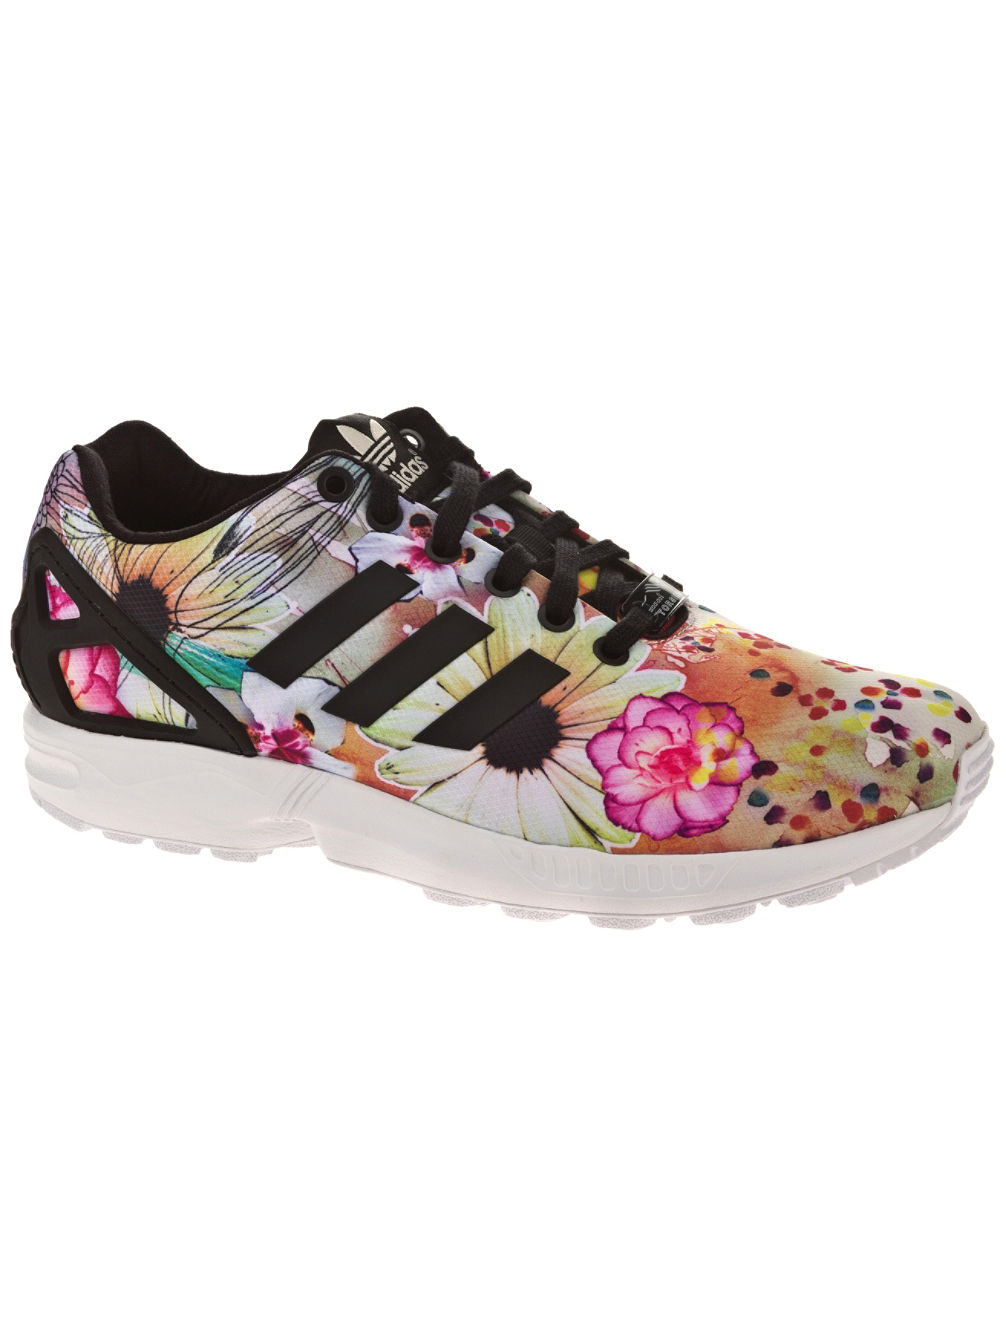 61a38c4f1 Buy adidas Originals ZX Flux Sneakers Women online at Blue Tomato